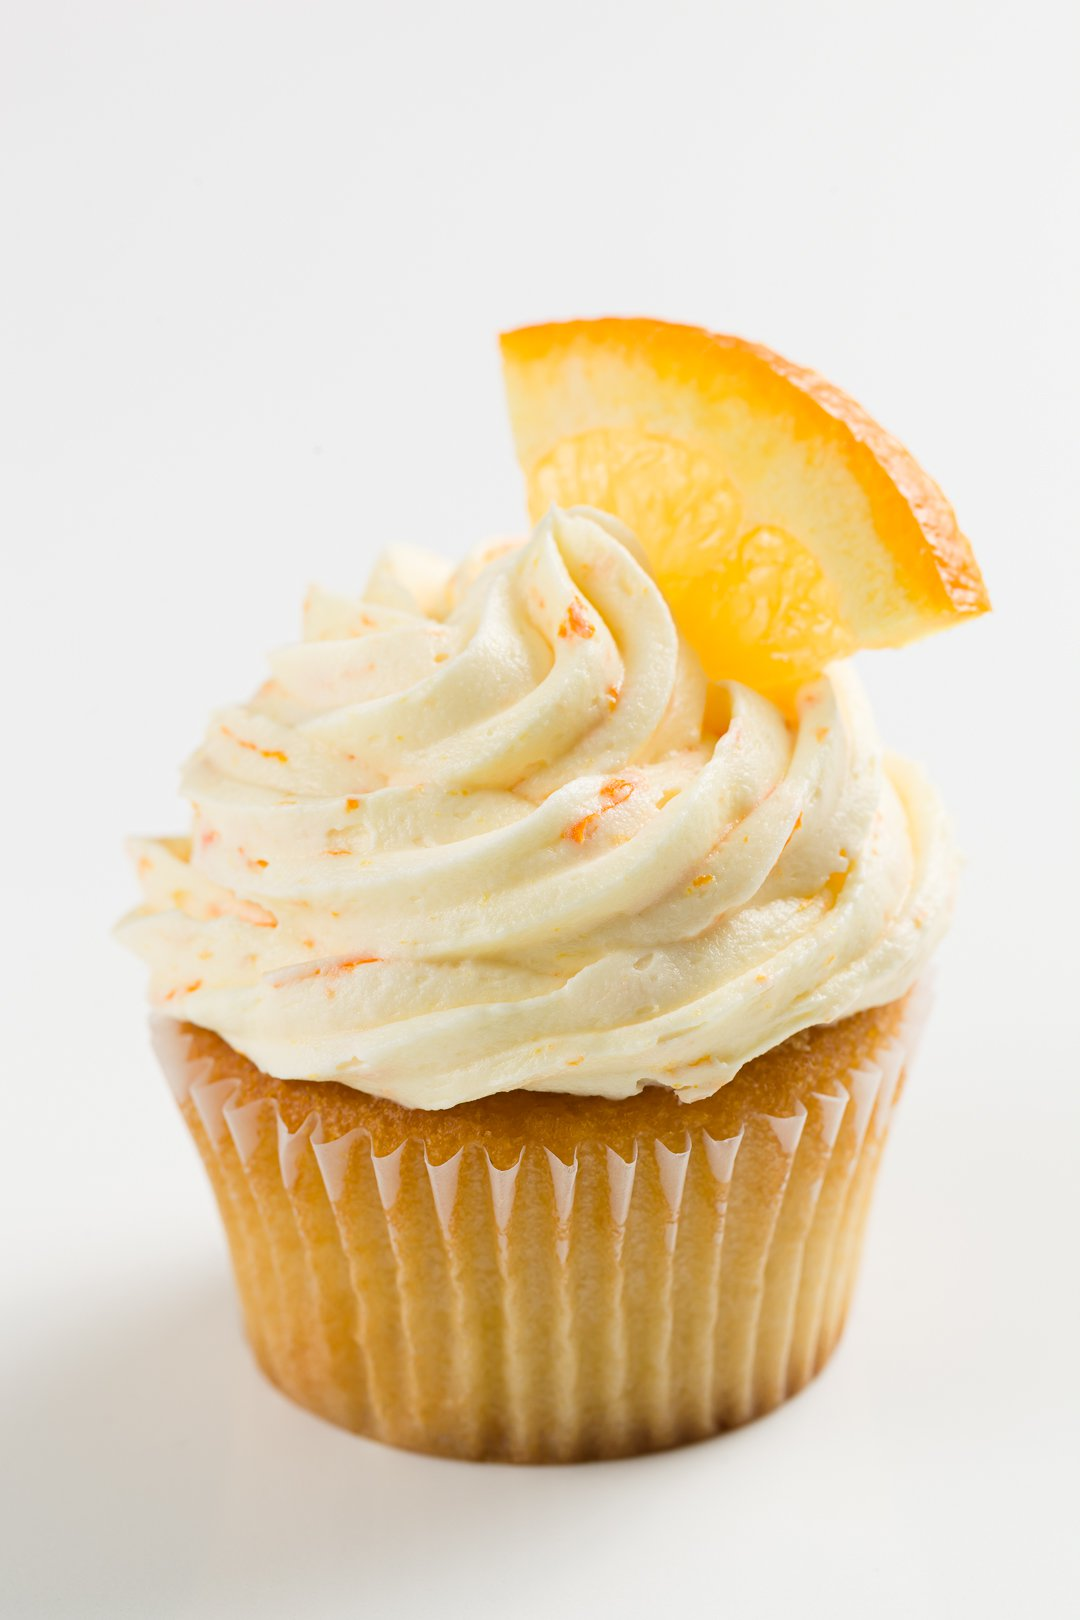 cupcake frosted with orange buttercream